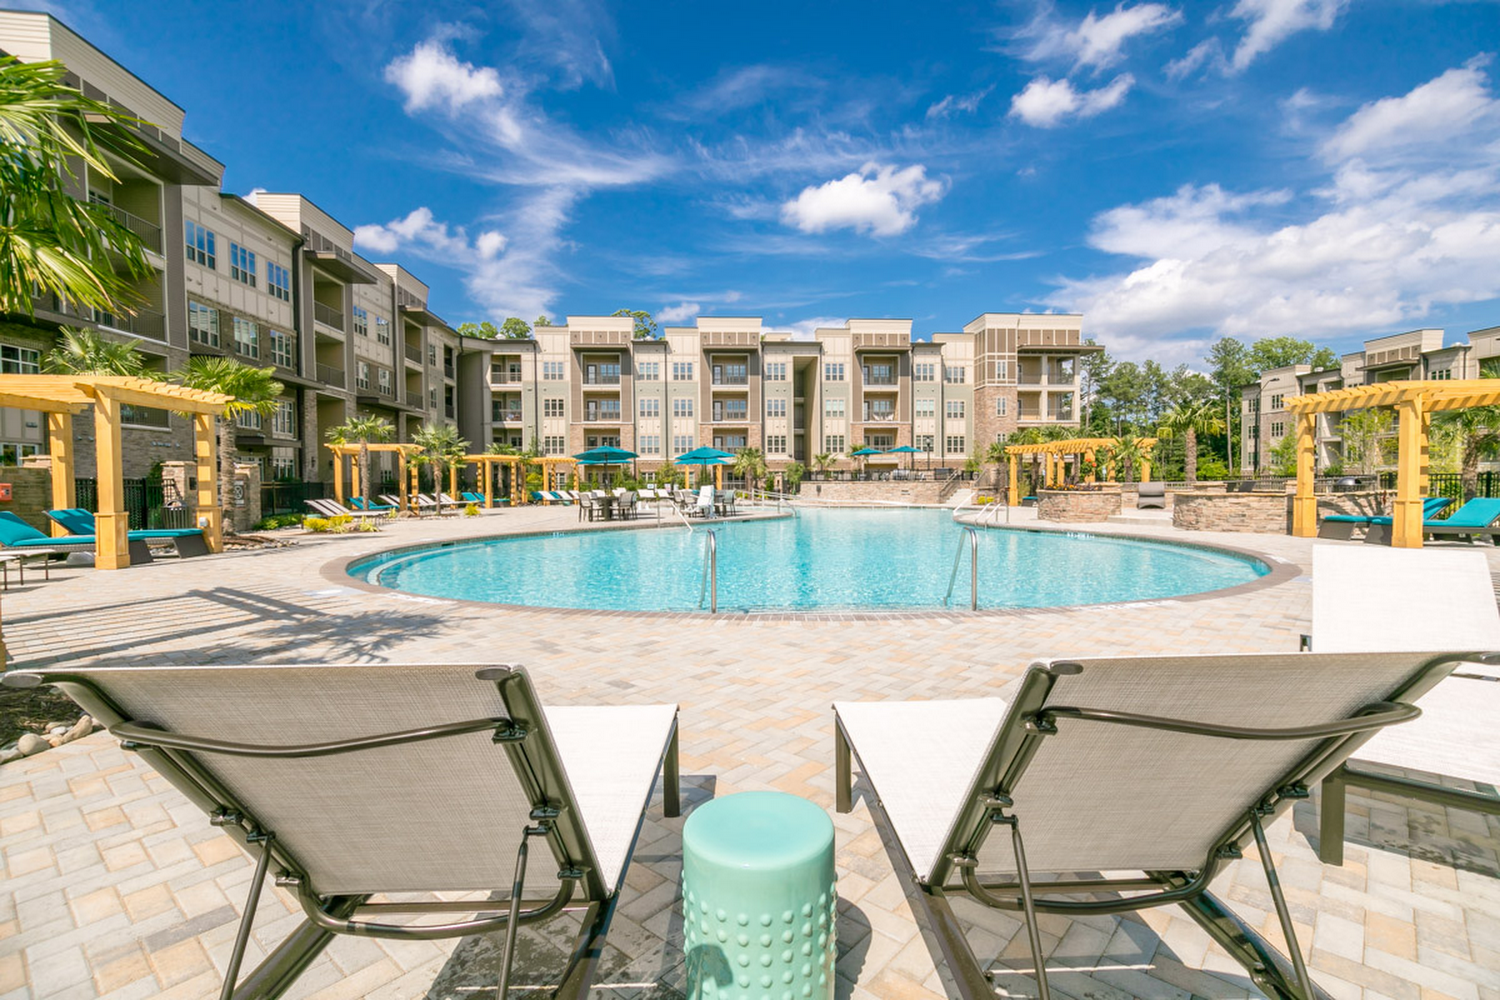 Watters Creek Apartments Prices